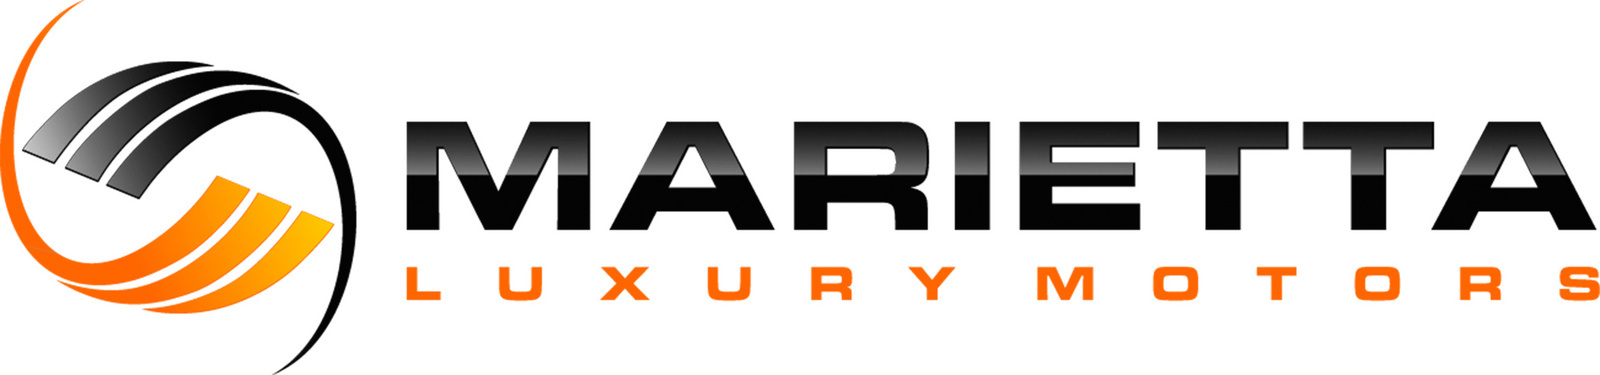 Marietta luxury motors marietta ga read consumer for Marietta luxury motors marietta ga